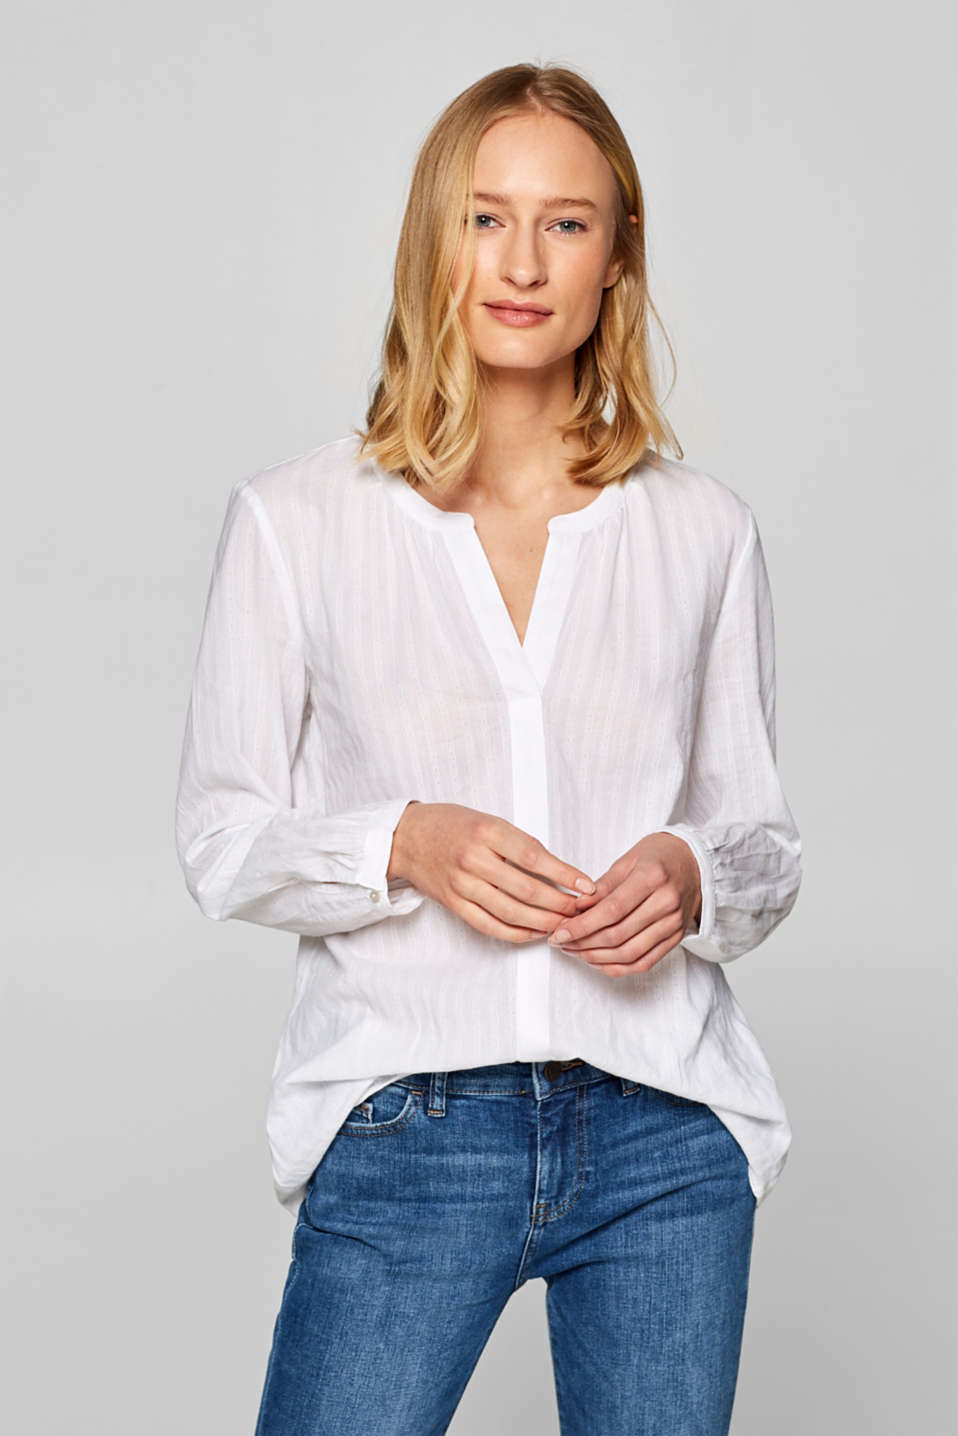 Esprit - Henley blouse with textured stripes, 100% cotton